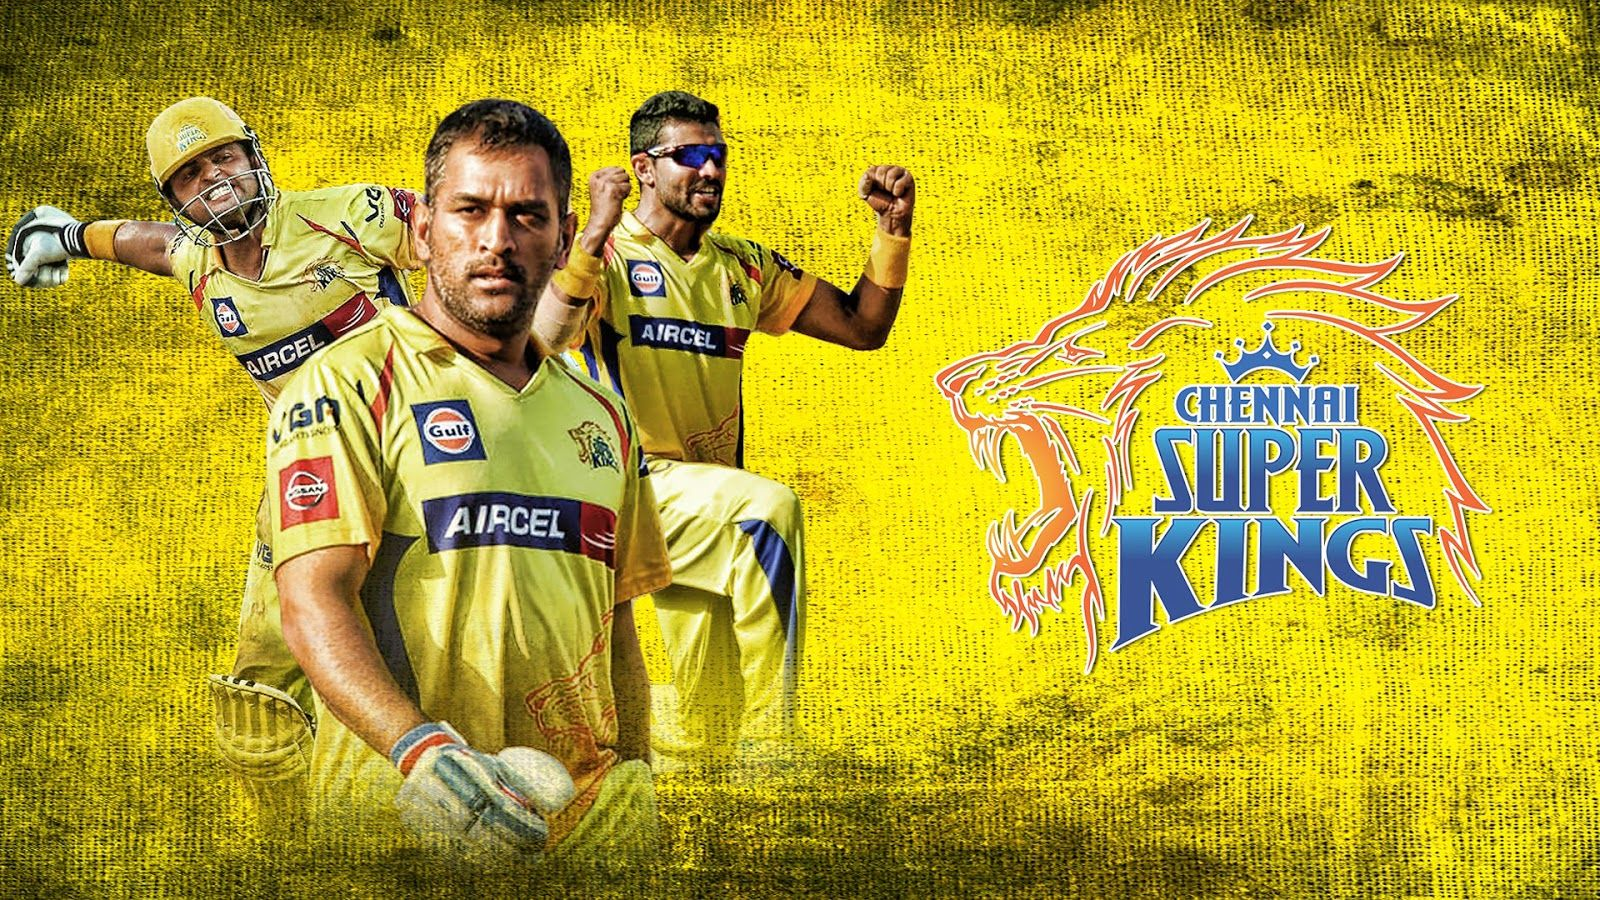 Dhoni Csk Wallpapers Hd